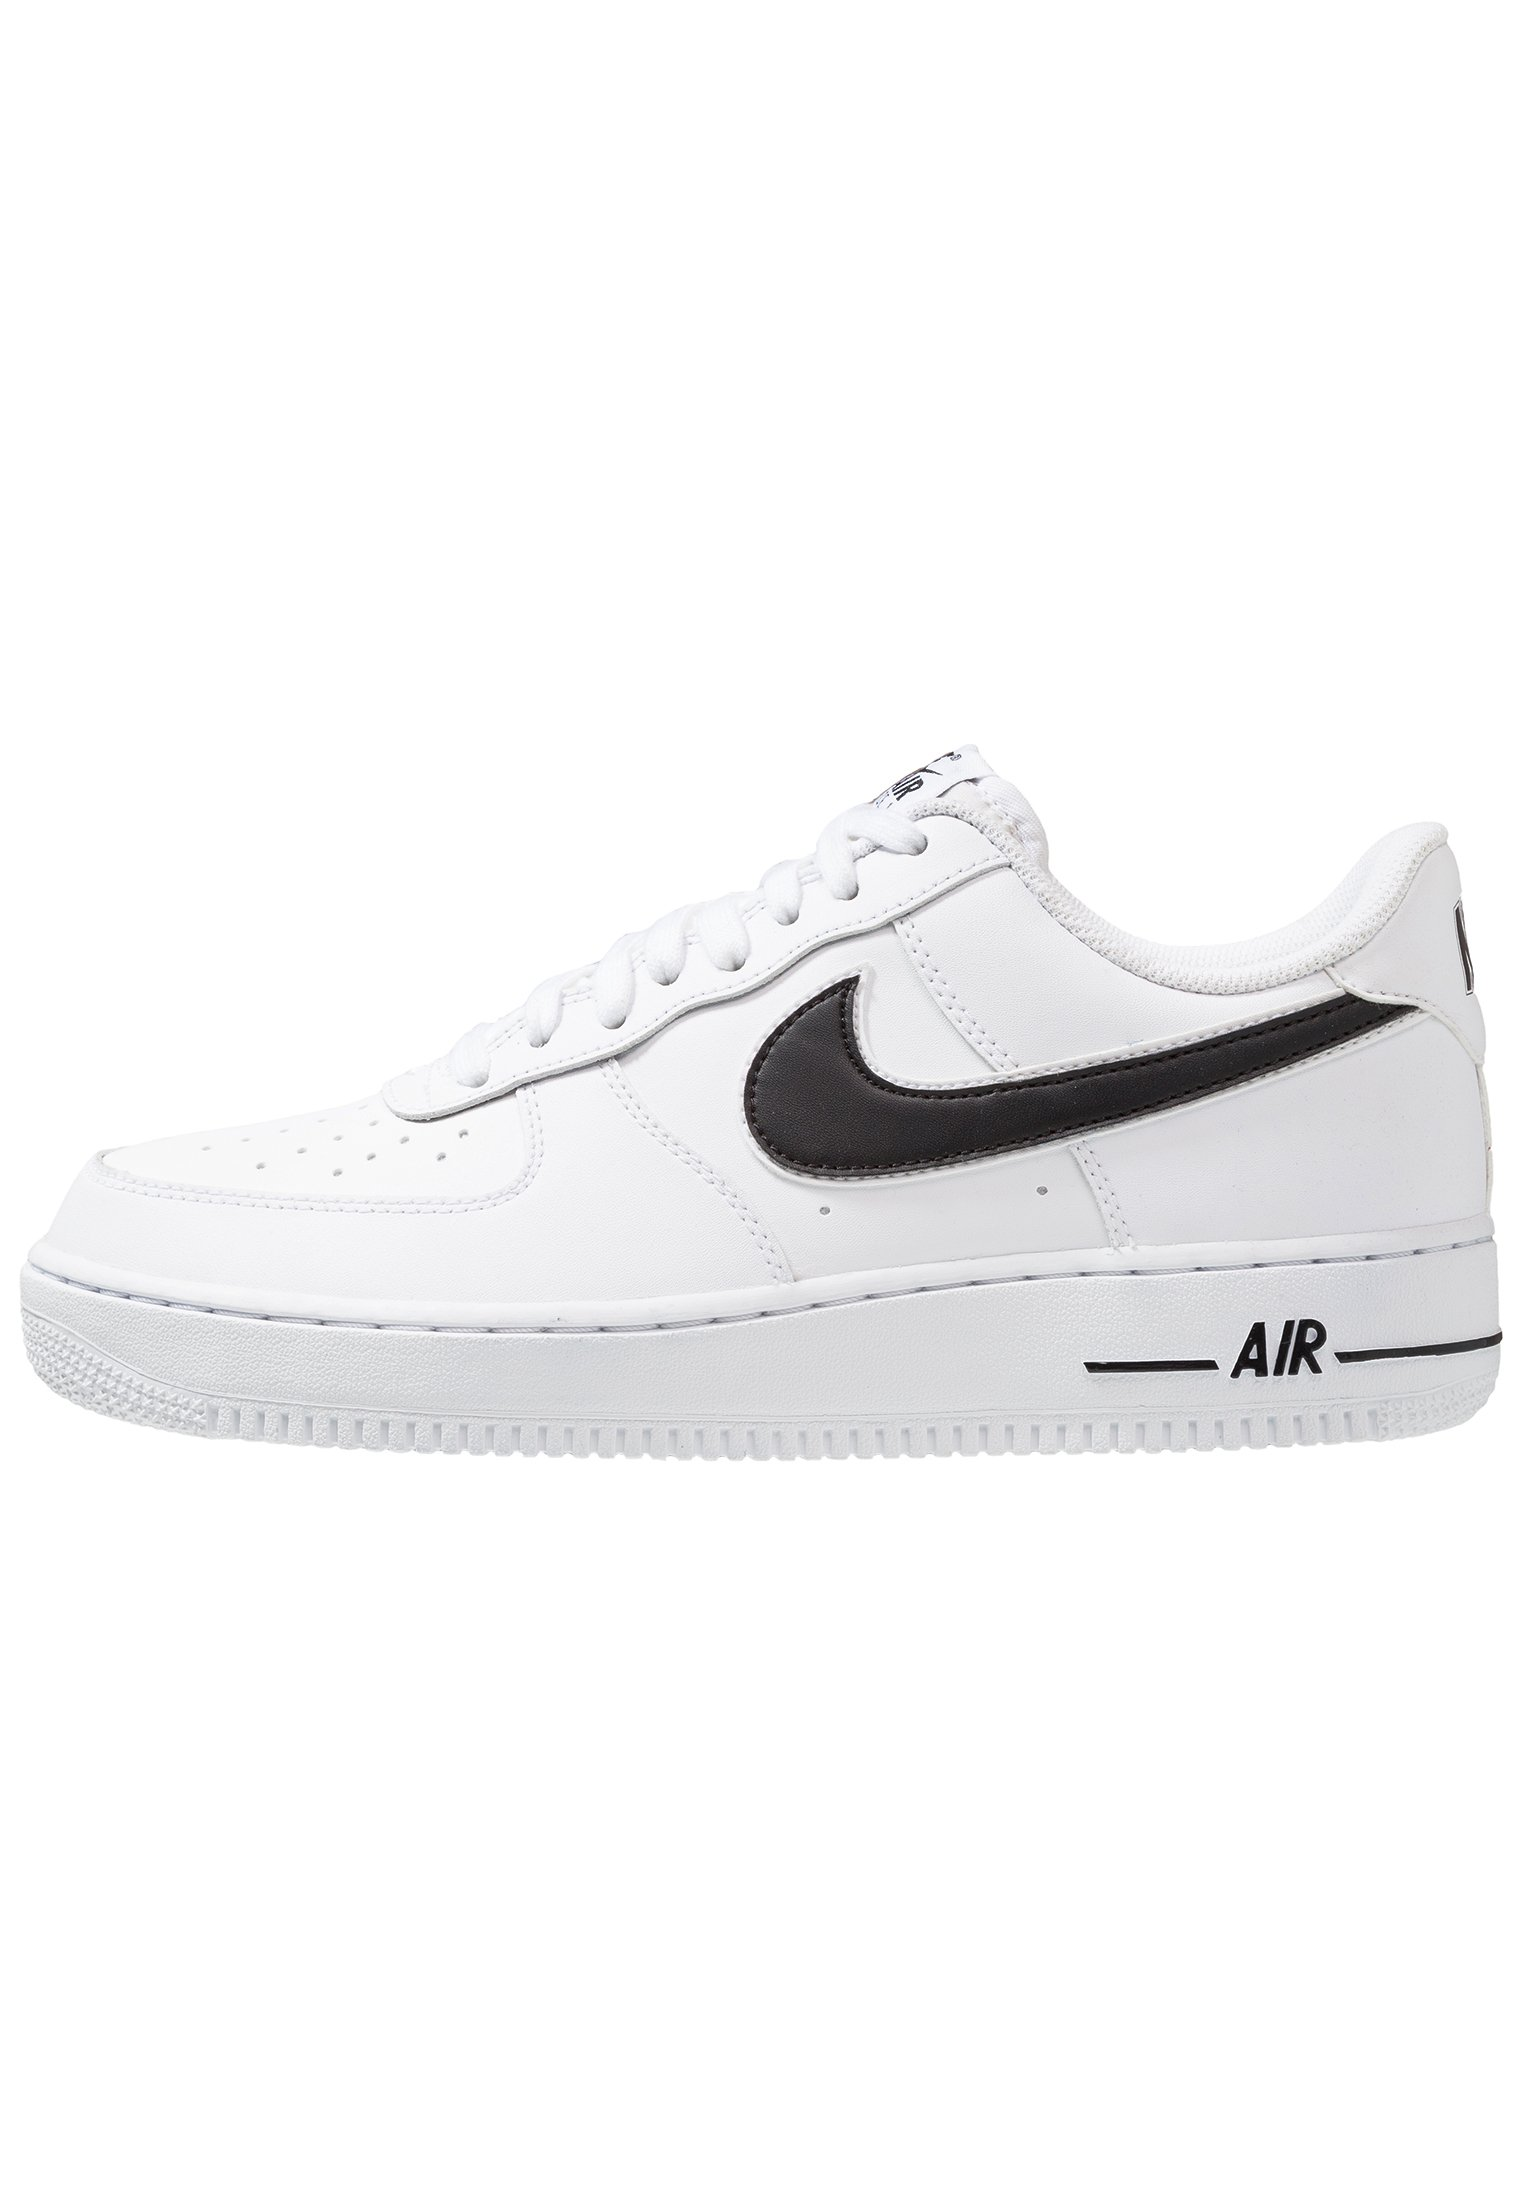 AIR FORCE 1 '07 Sneakers basse whiteblack